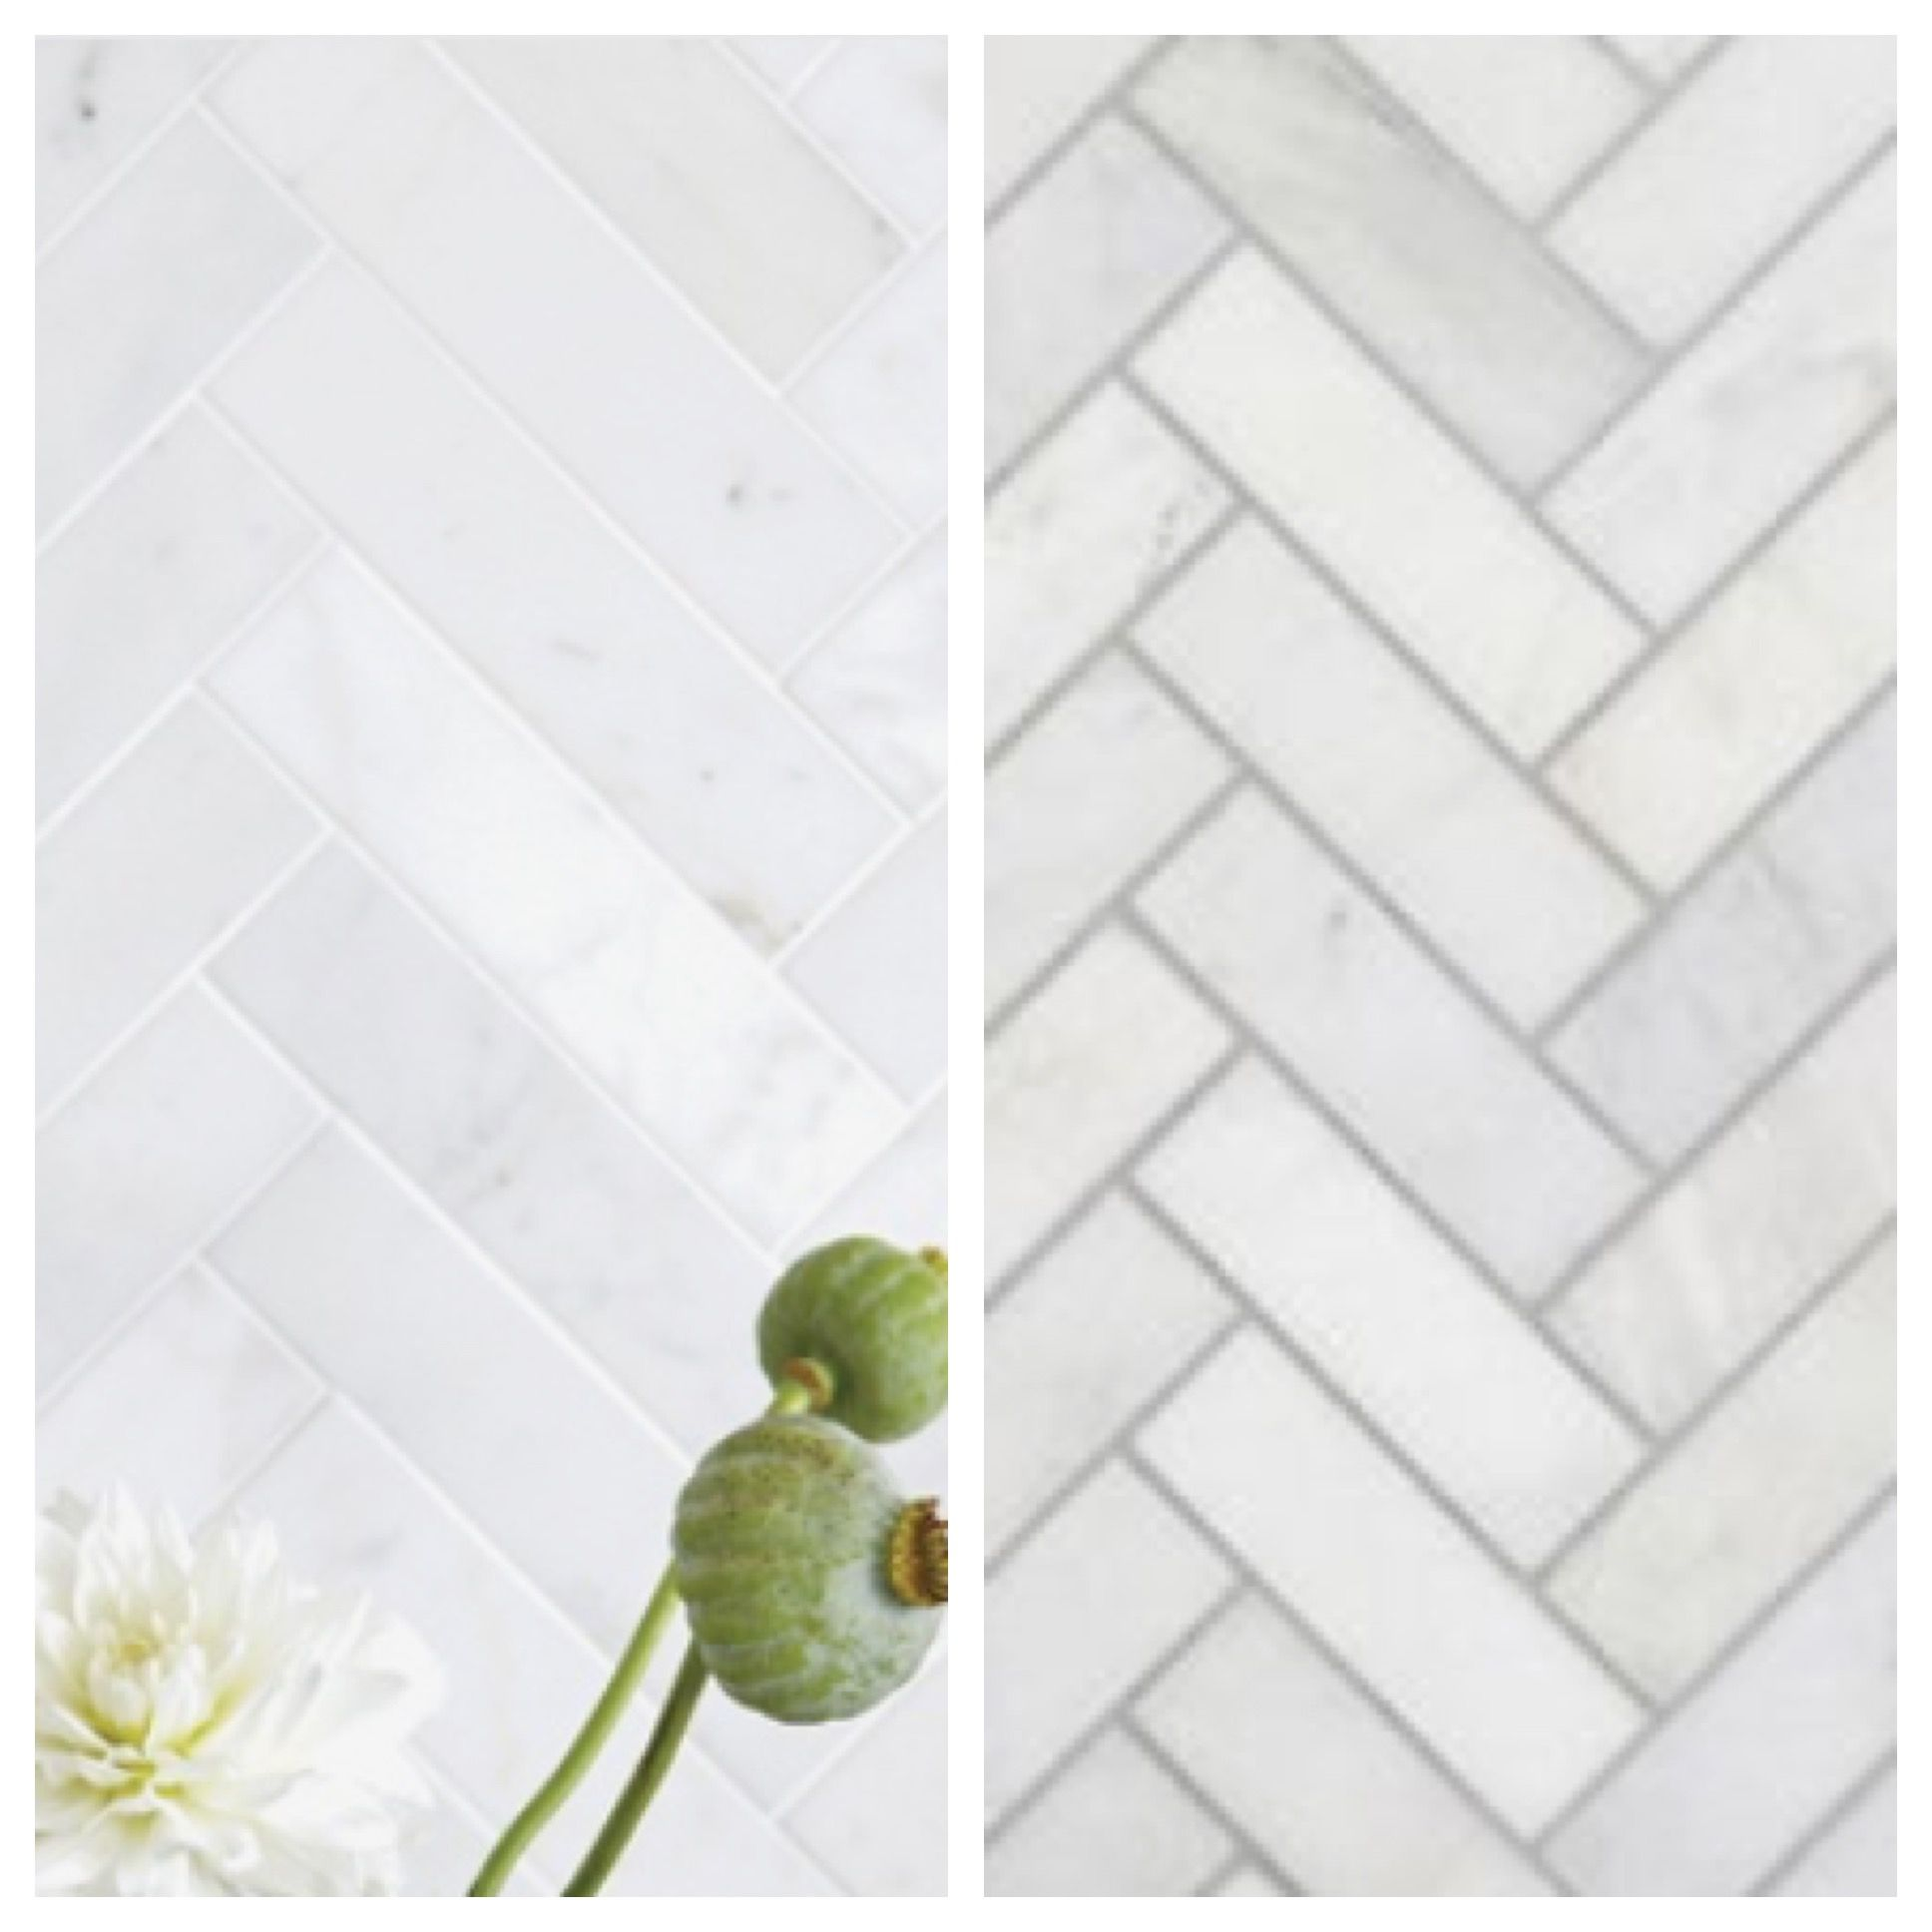 - Same 1x3 Marble Tile, Different Grout Color! WOW! What A